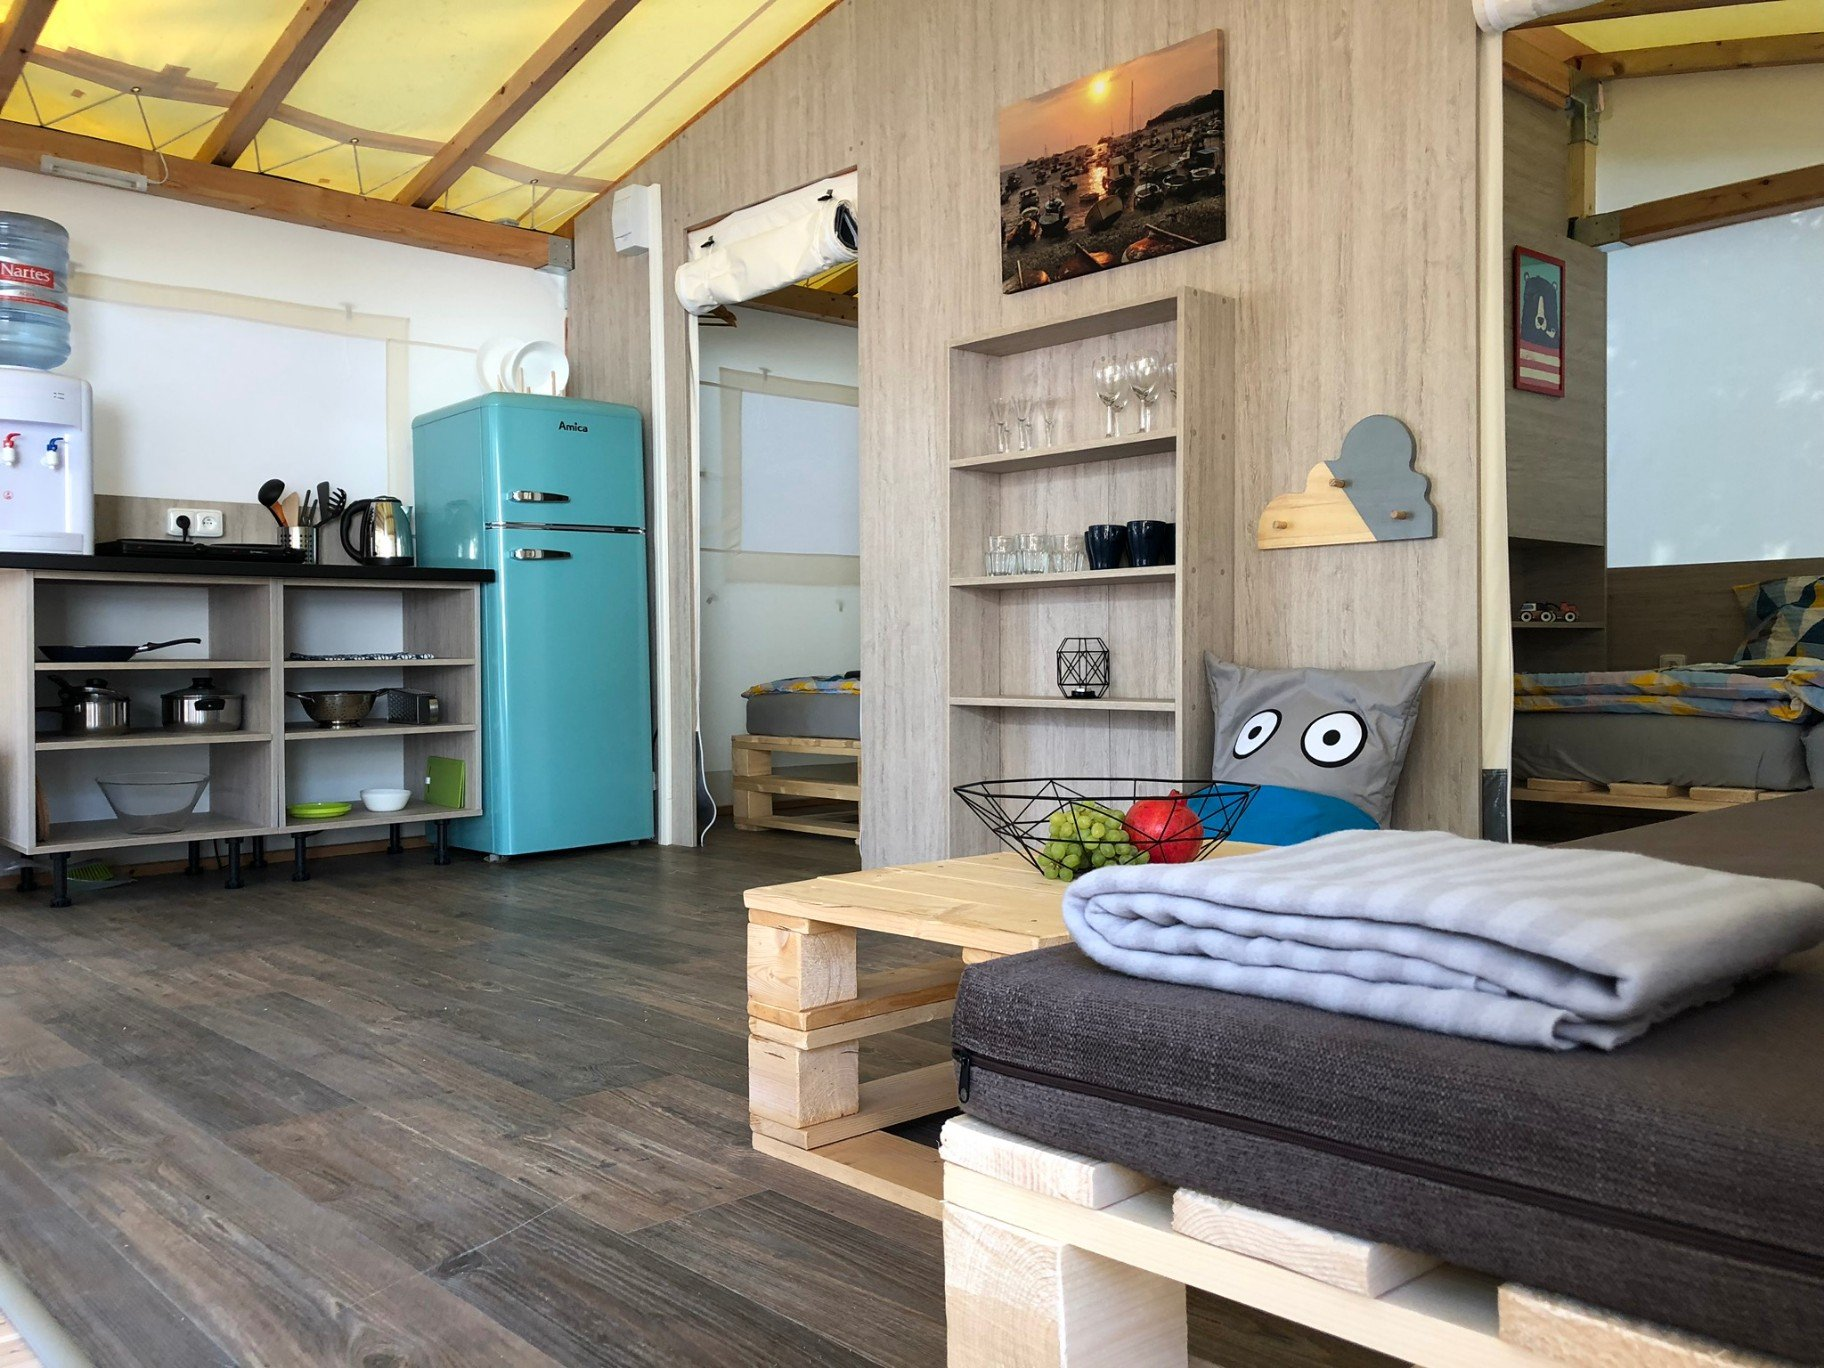 Kids friendly glamping tent Biograd na Moru camppark Soline